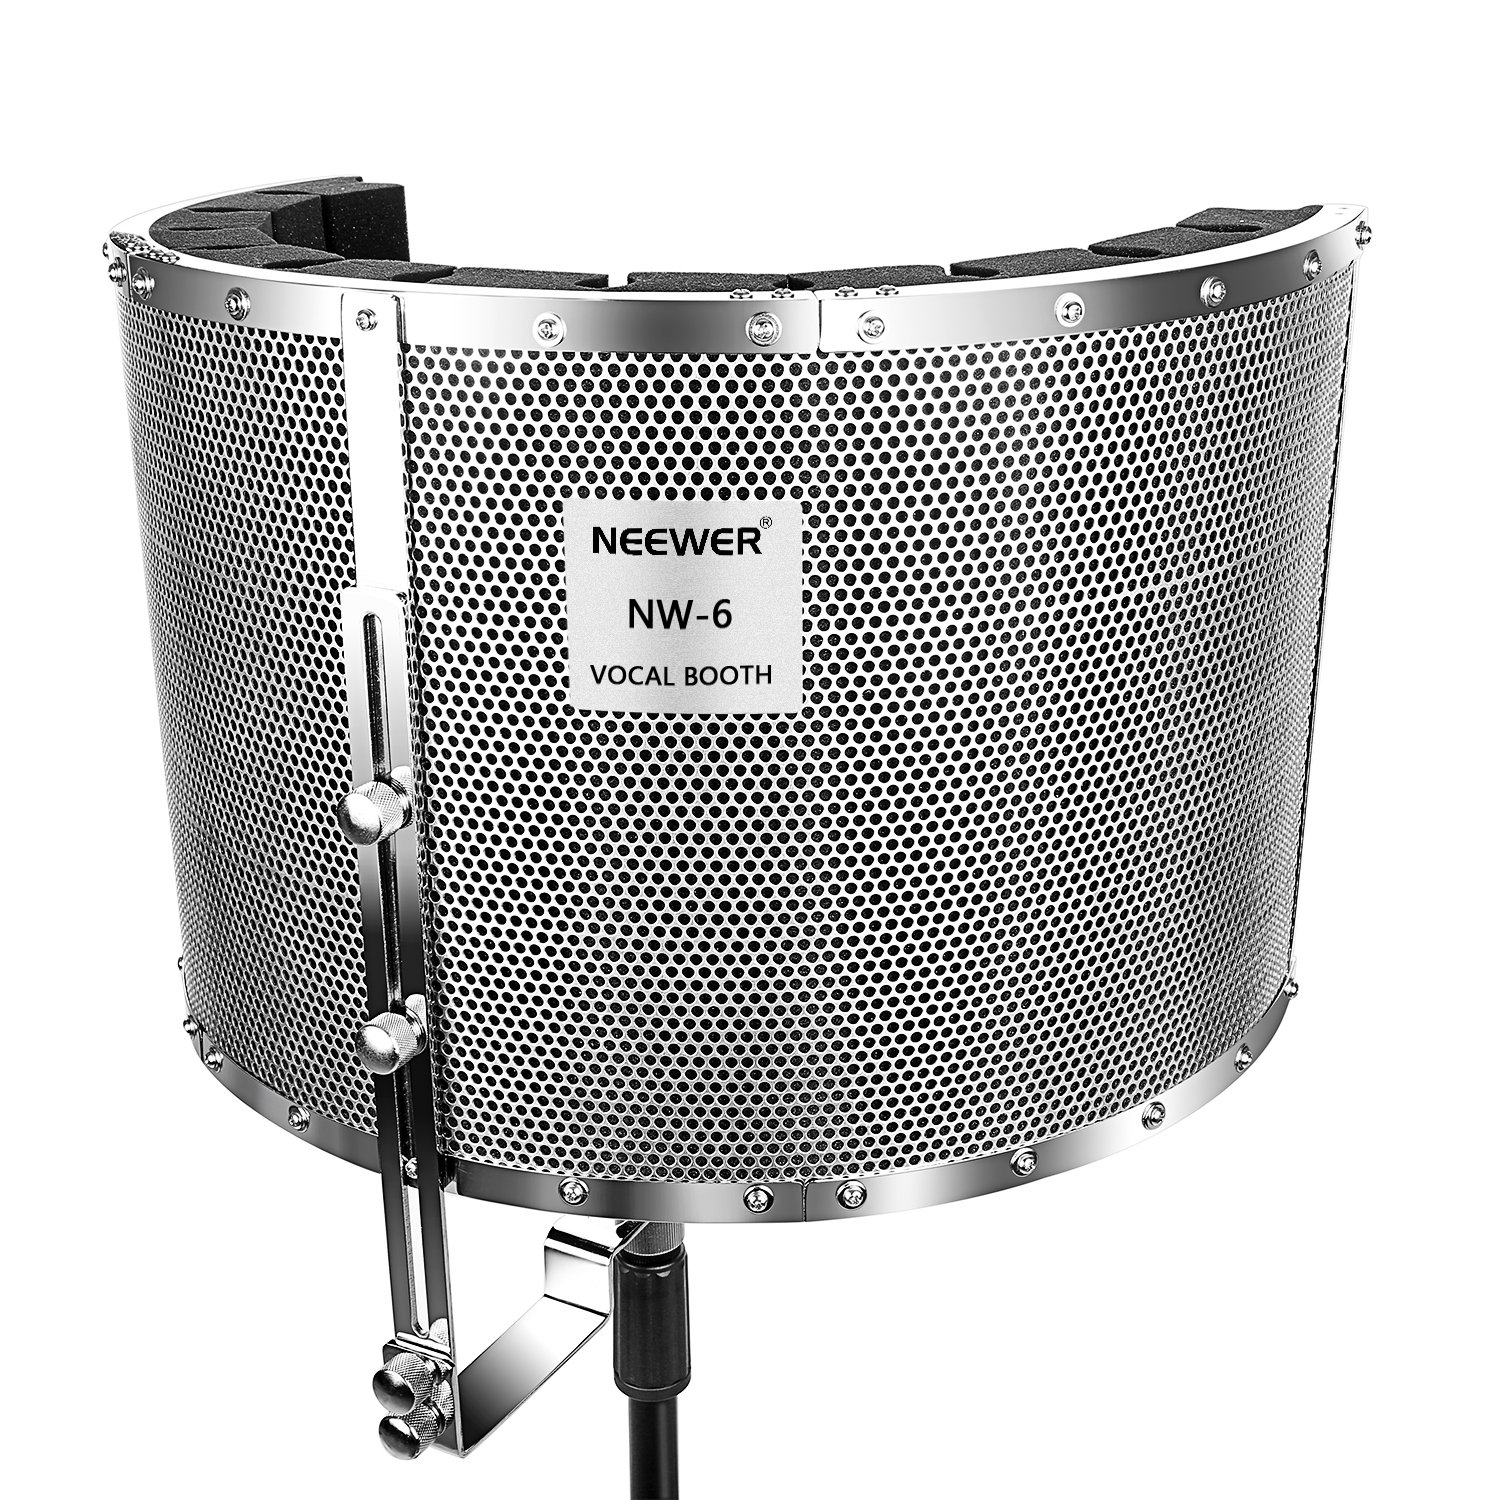 Neewer Microphone Isolation Shield Absorber Filter Vocal Isolation Booth with Lightweight Aluminum Panel, Thick Soundproofing Foams, Mounting Brackets and Screws for Mic Stand with 5/8'' Thread